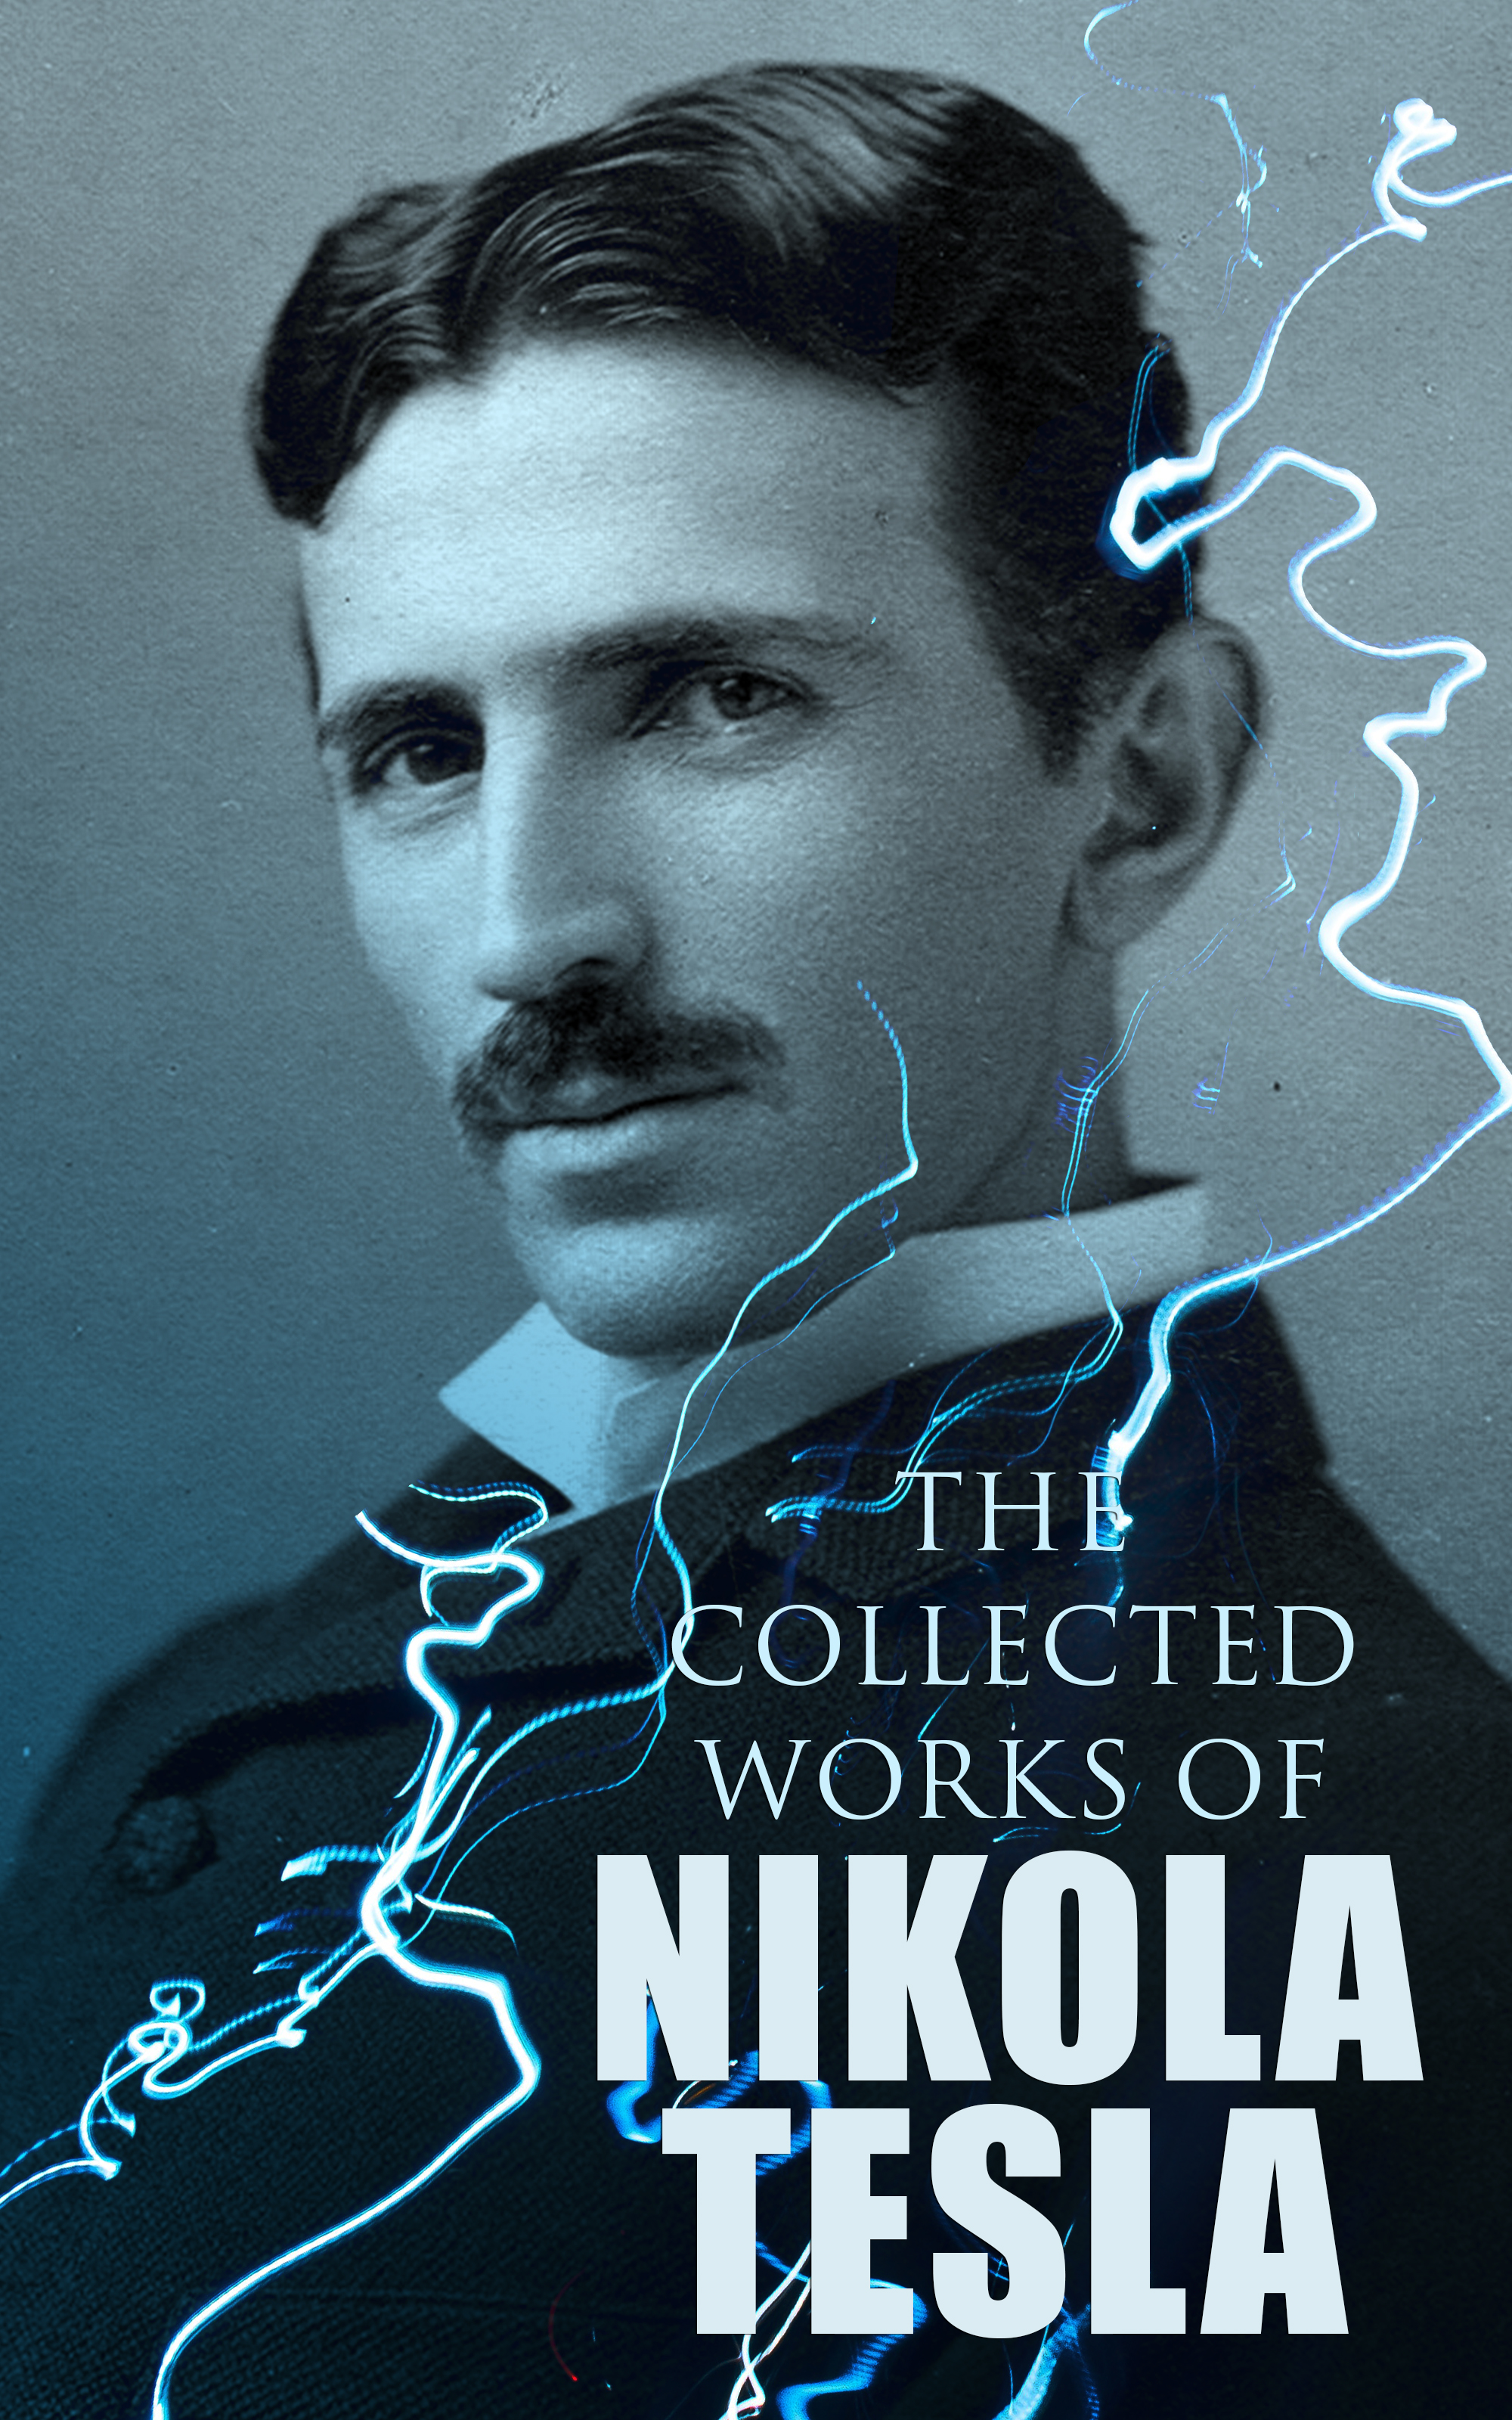 The Collected Works of Nikola Tesla